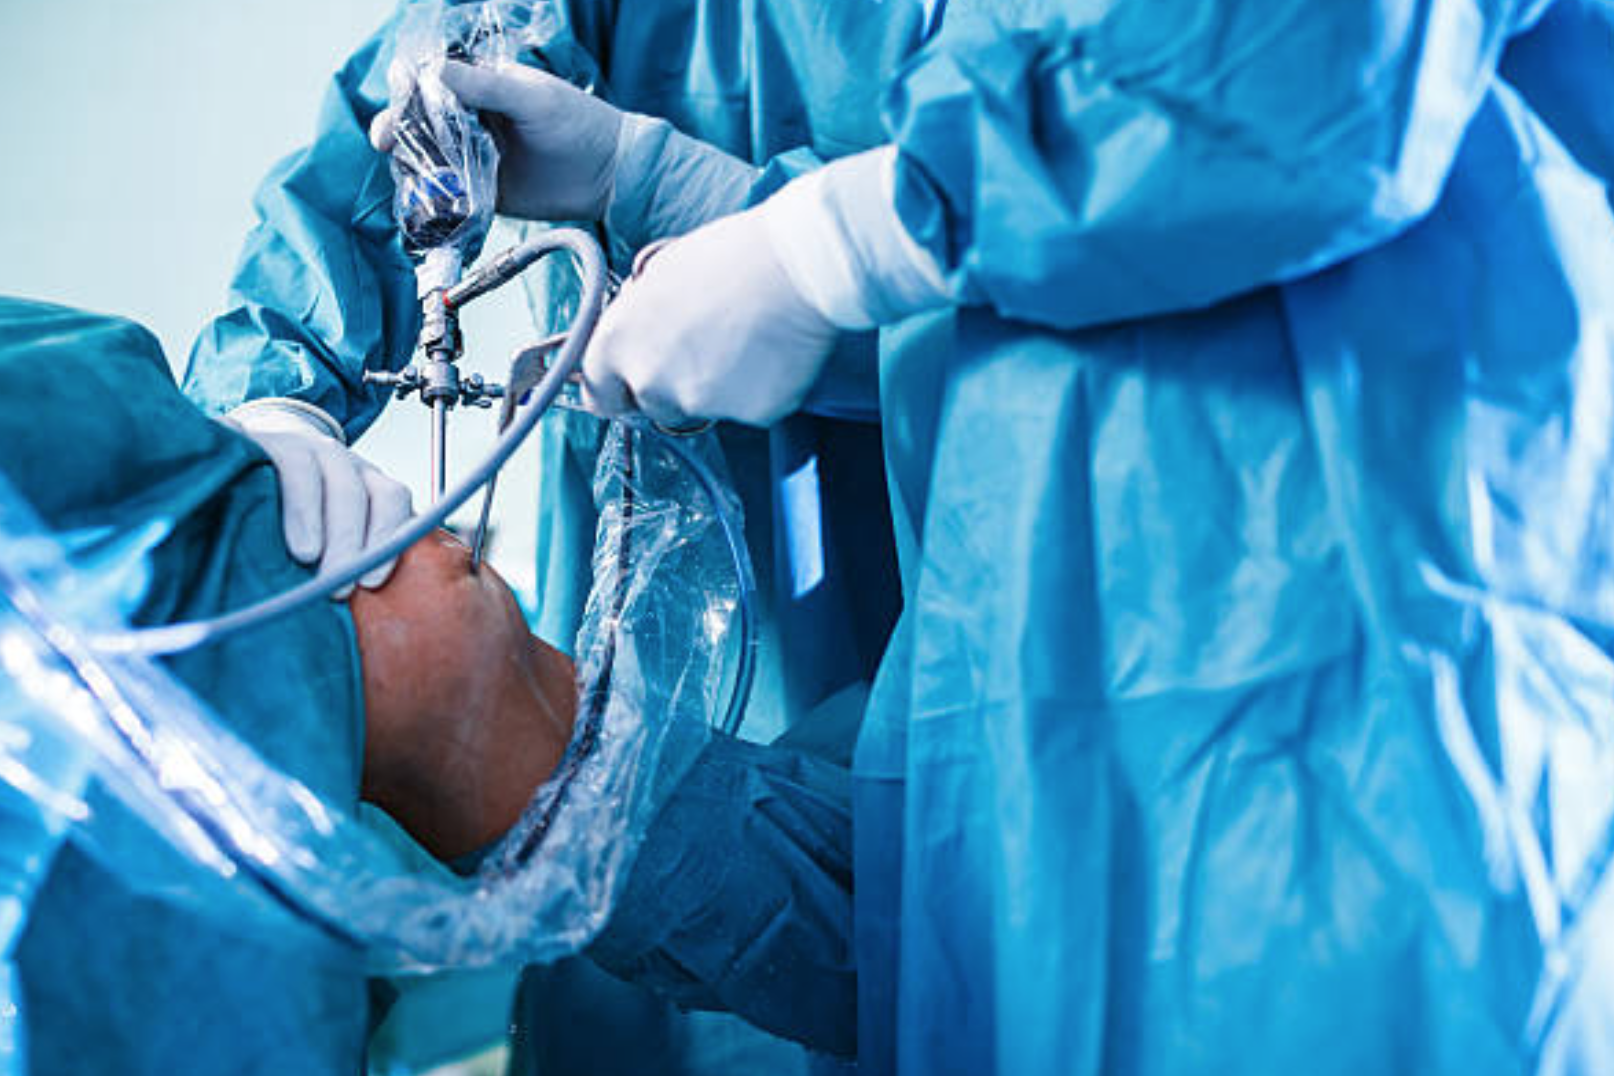 Outpatient is the Future of Total Joint Replacement